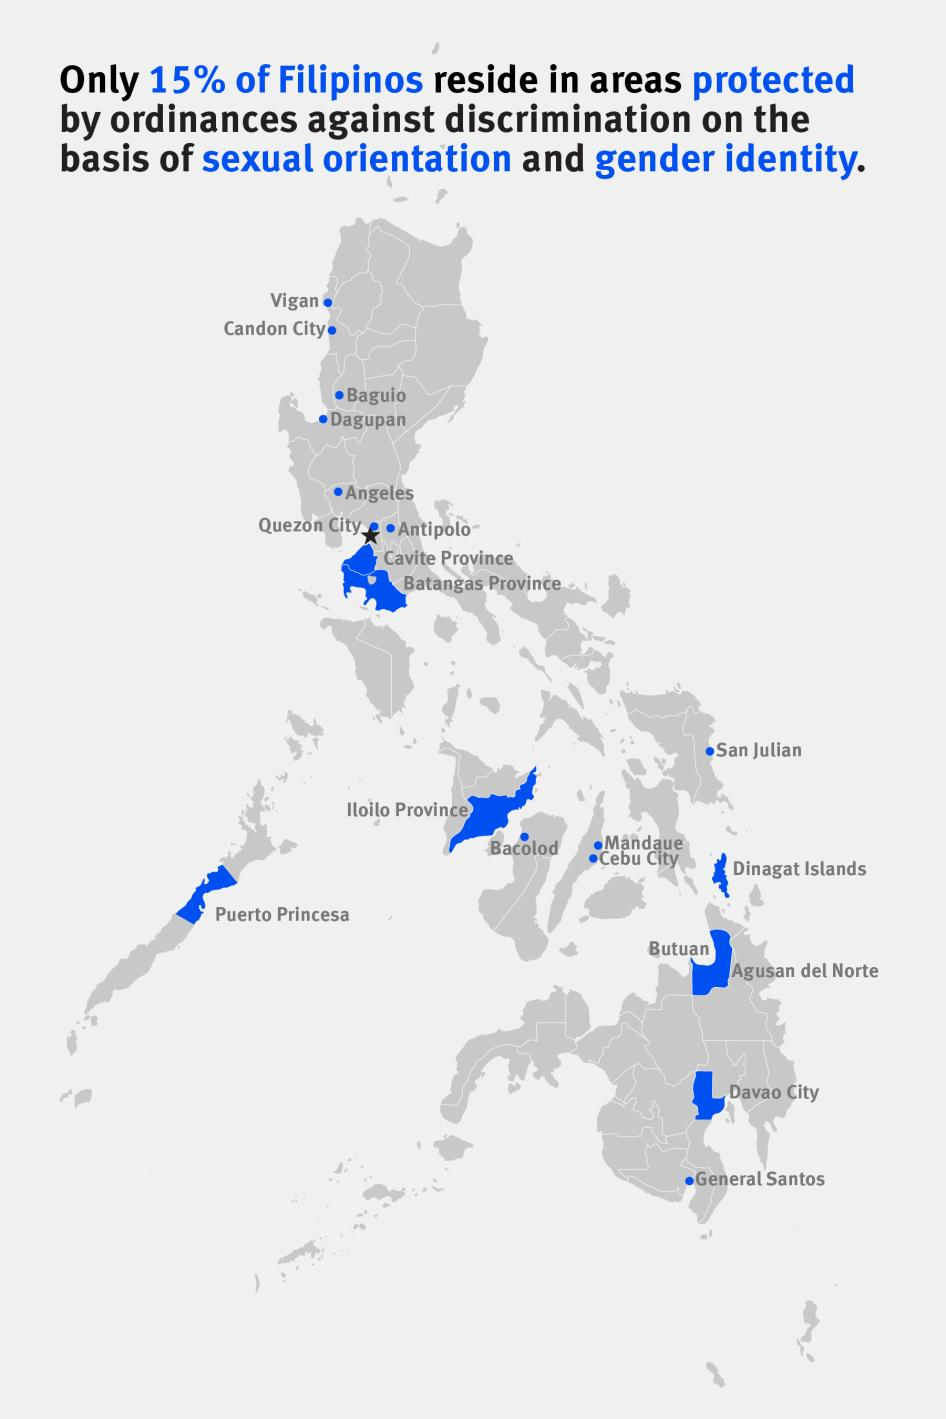 Map of the of areas in the Philippines protected from discrimination based on Sexual Orientation and Gender